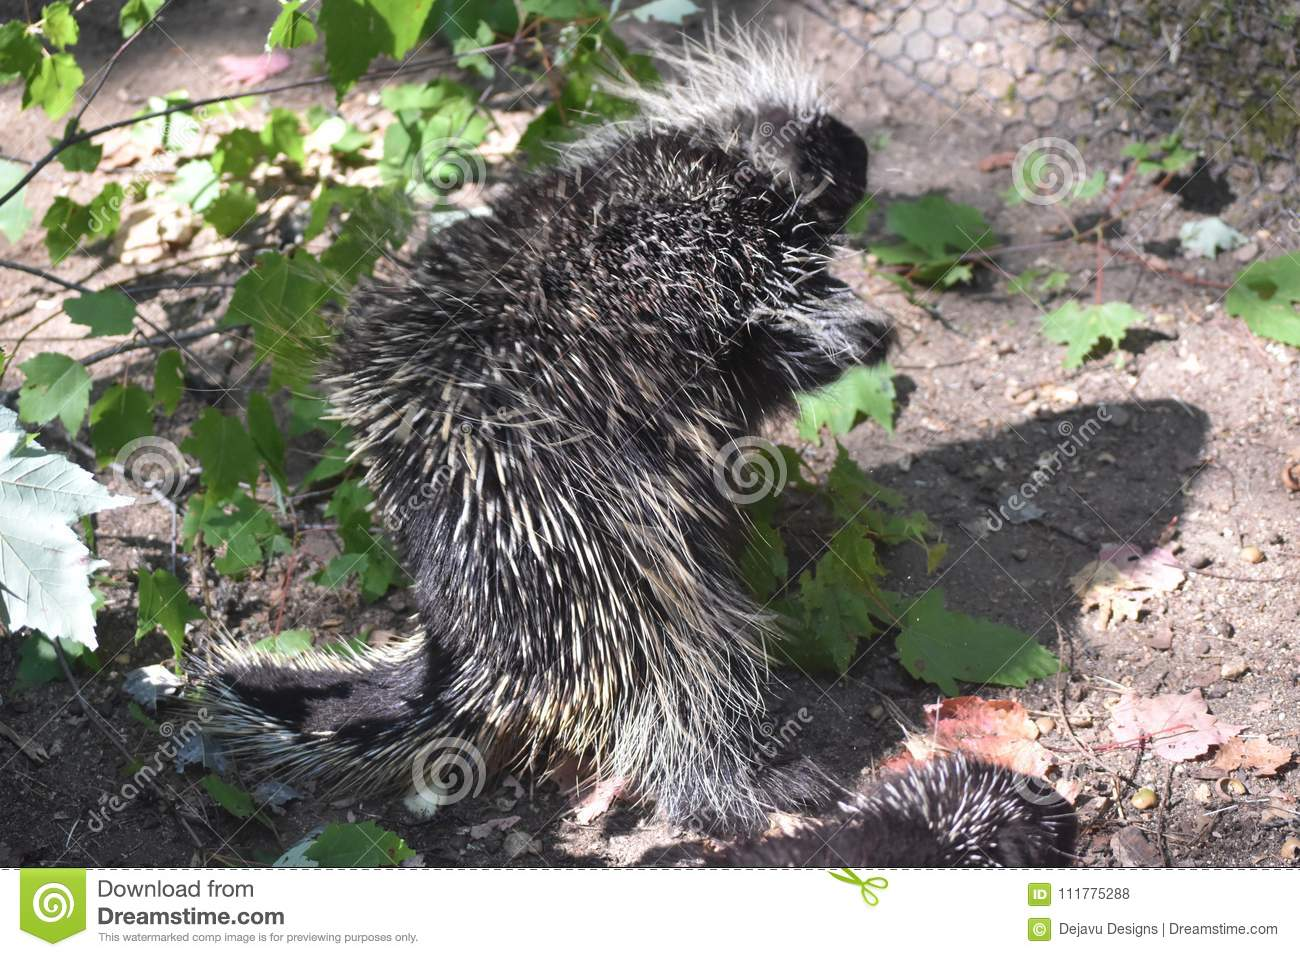 Wild porcupine walking away from the camera